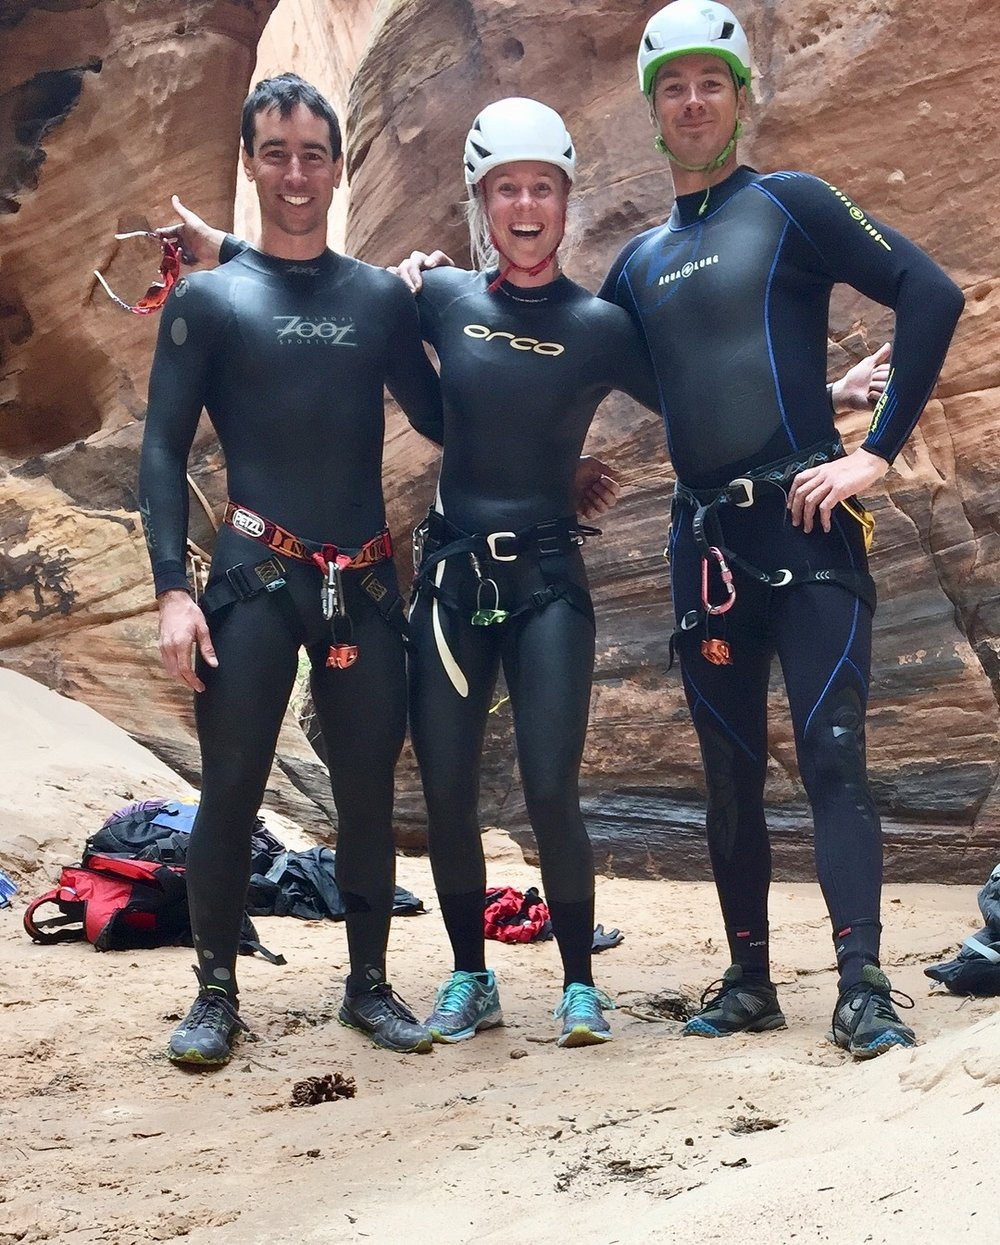 Dream Team, ready to take on the cold water at the bottom!